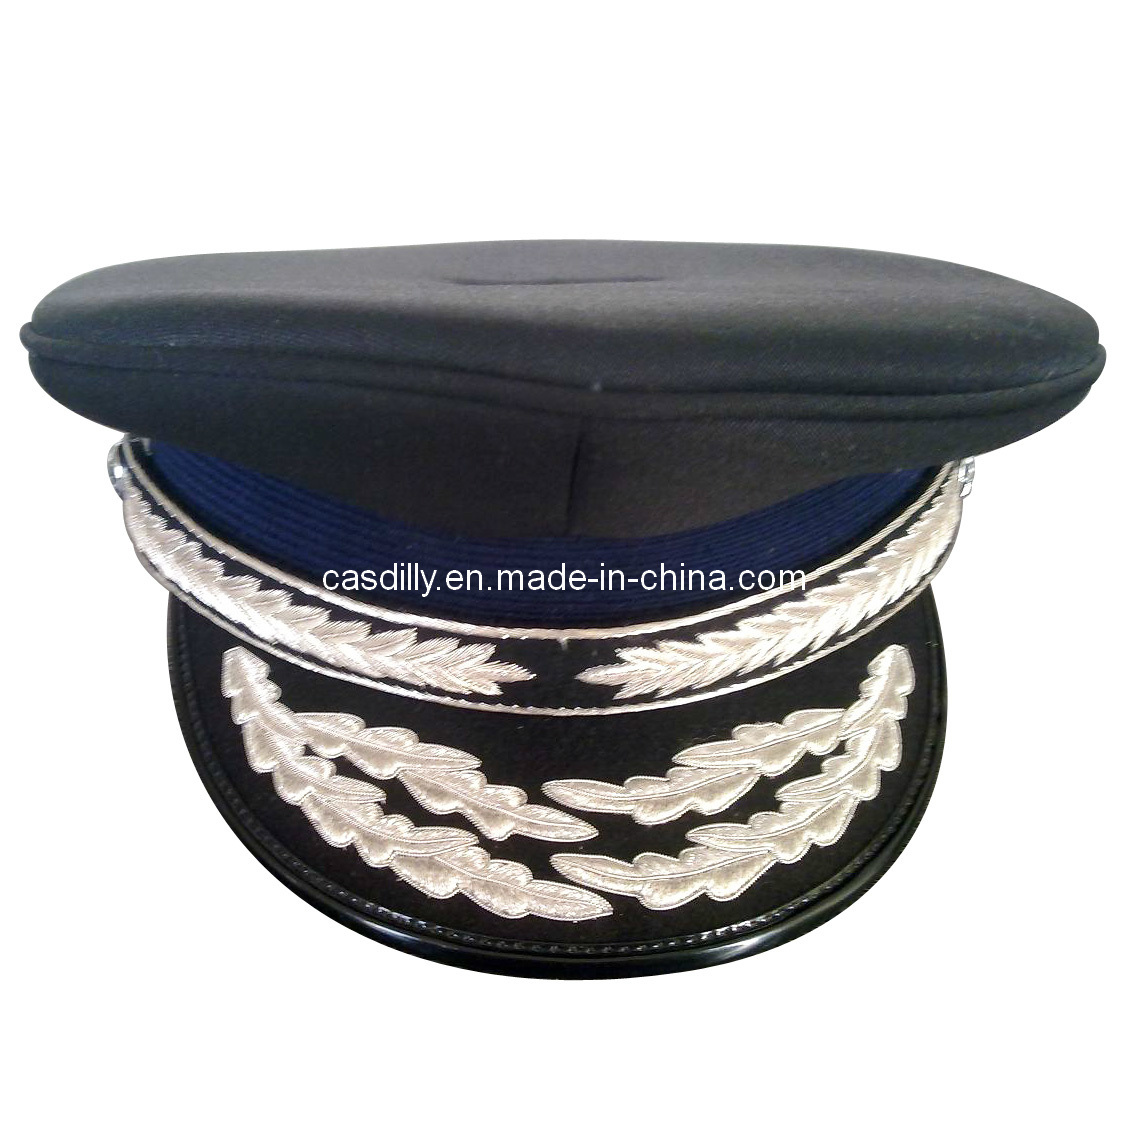 Peak Cap for Military with Good Quality